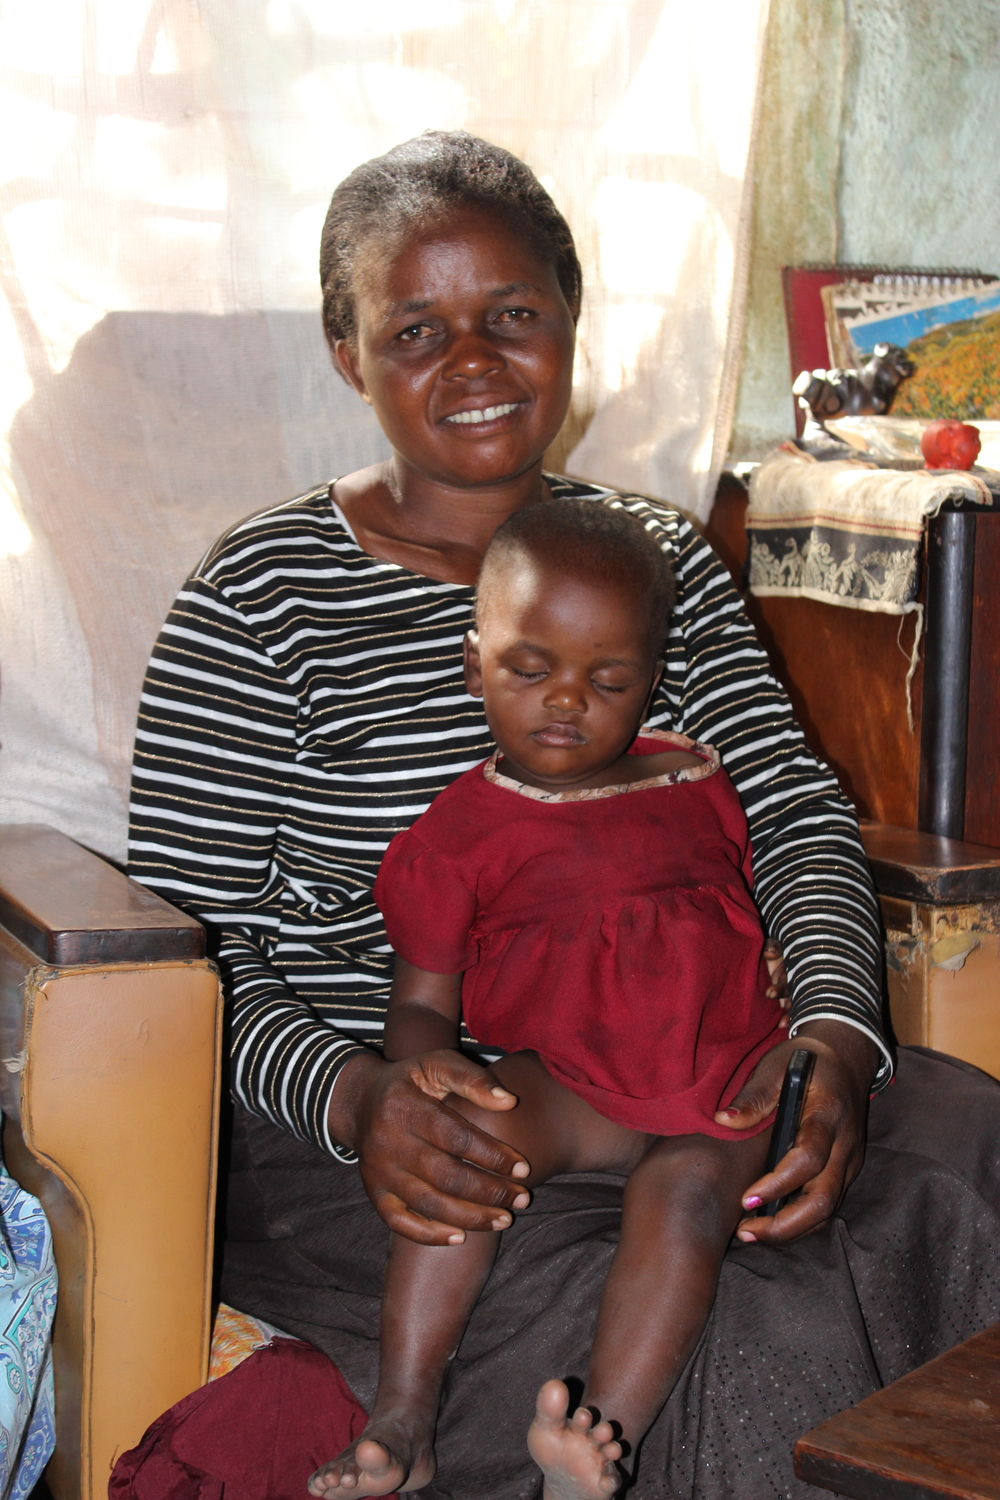 Florence, a care worker in Sukubva, holds Racheal, who falls asleep on her during our home visit.